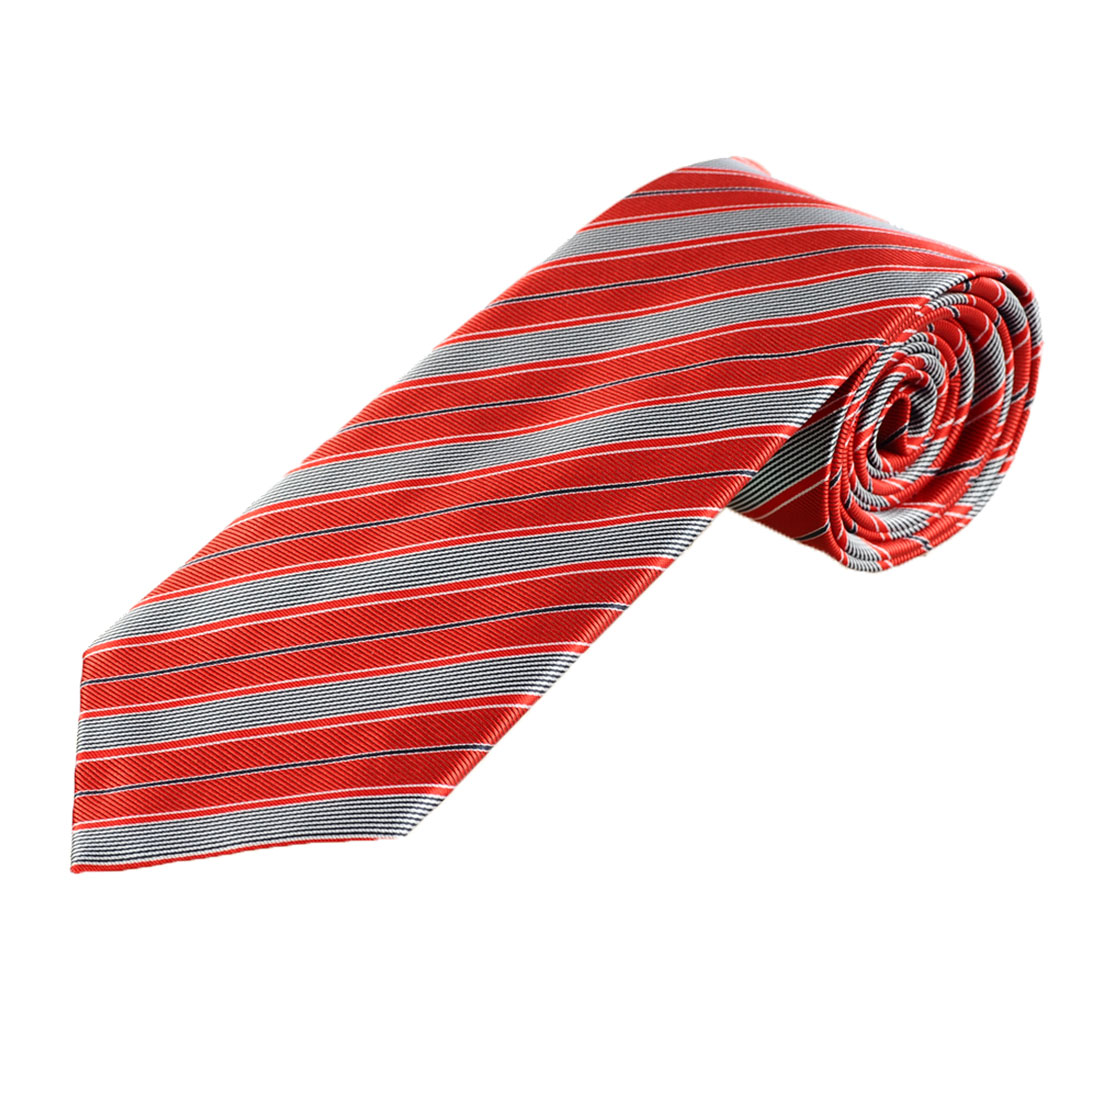 8.5cm Wide Red Gray Slanting Stripe Pattern Self Tie Necktie for Bridegroom